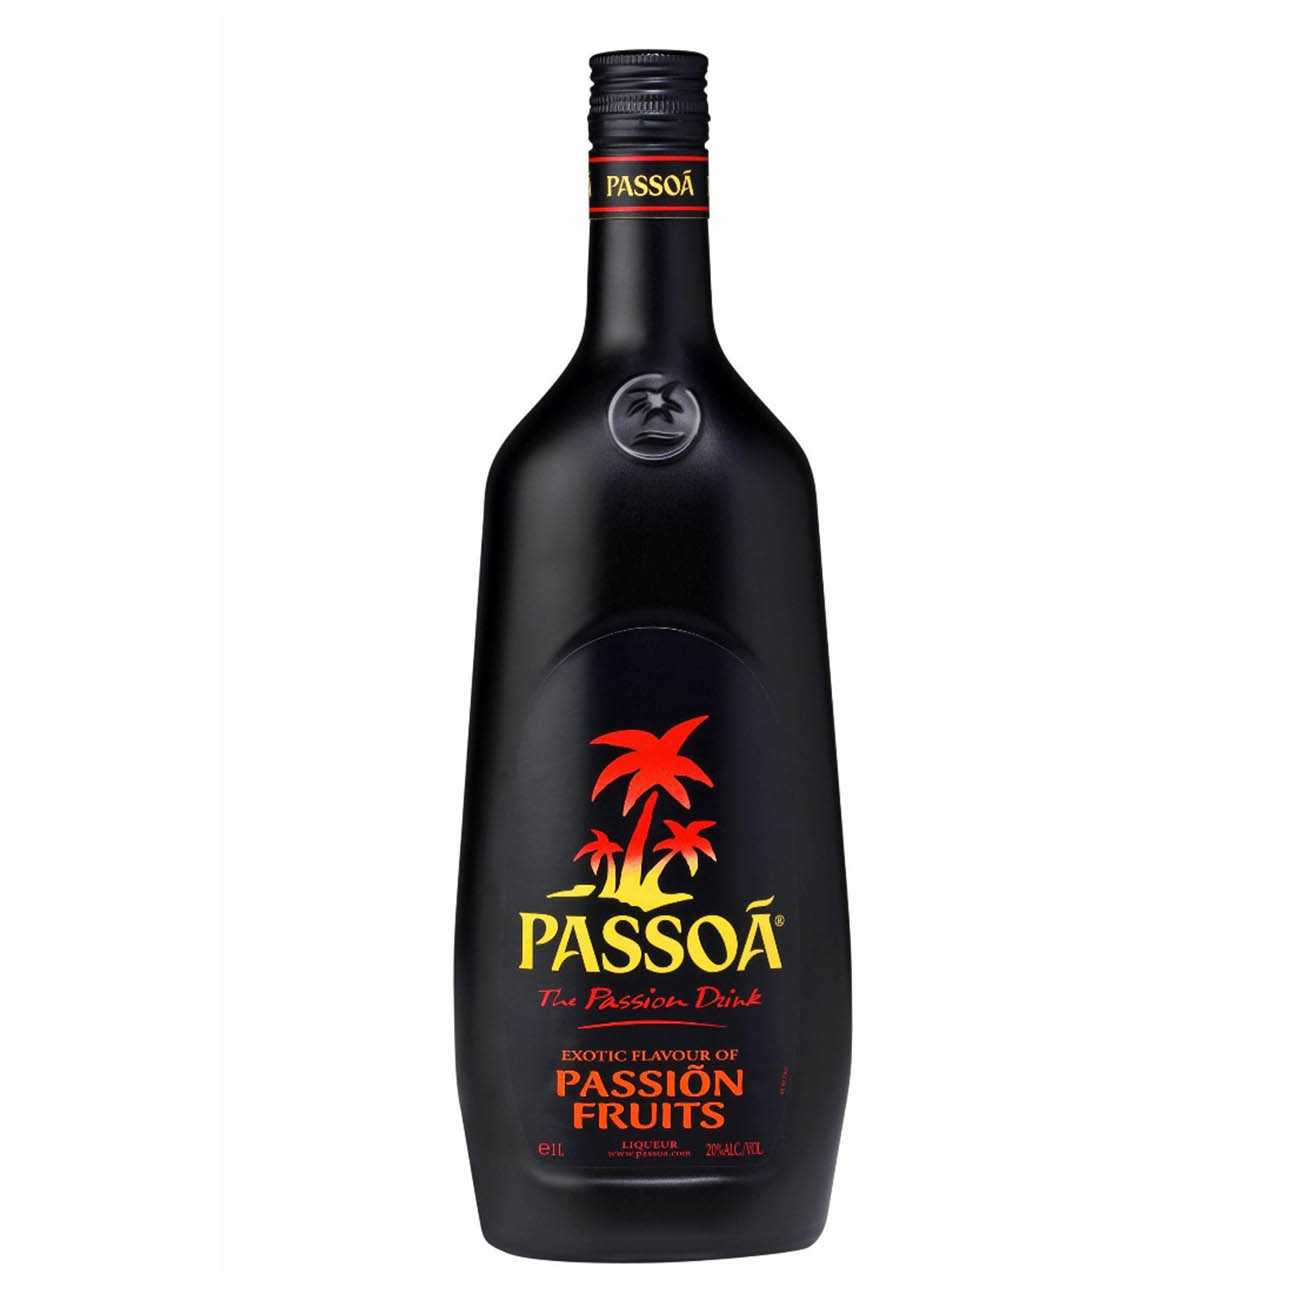 Lichior, THE PASSION DRINK 1000 ML, Passoa